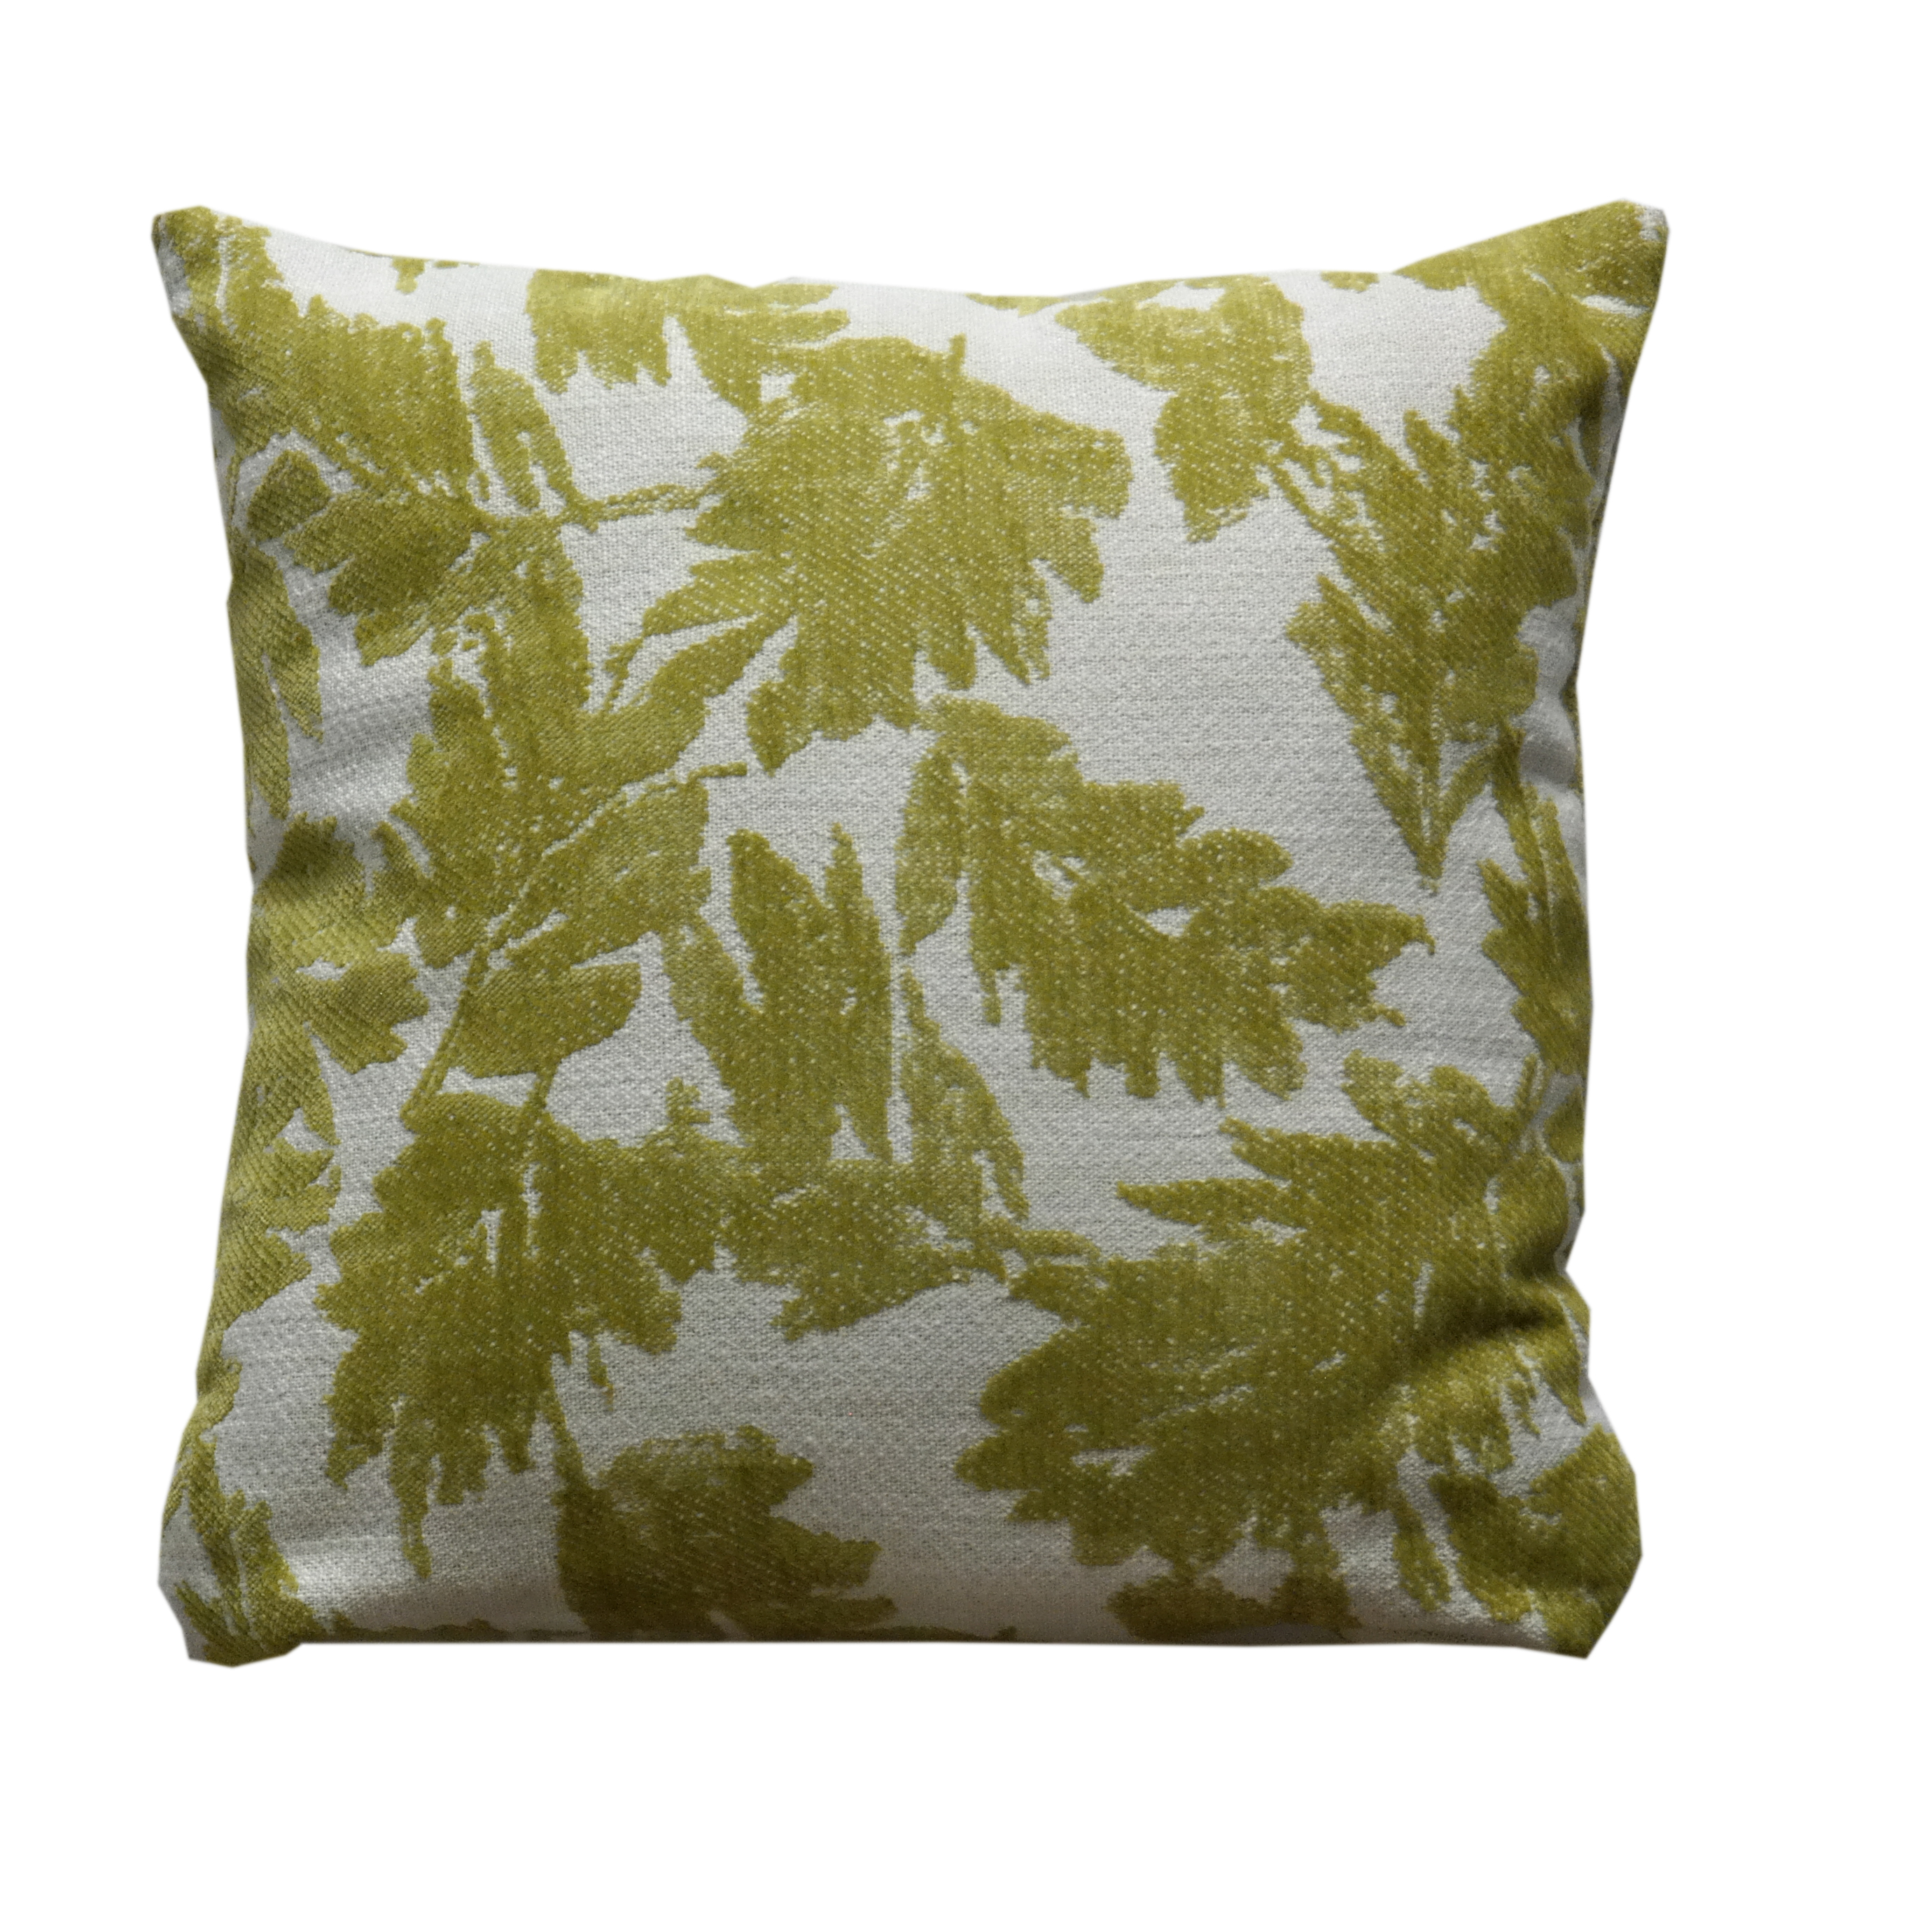 'Autumn' cushion